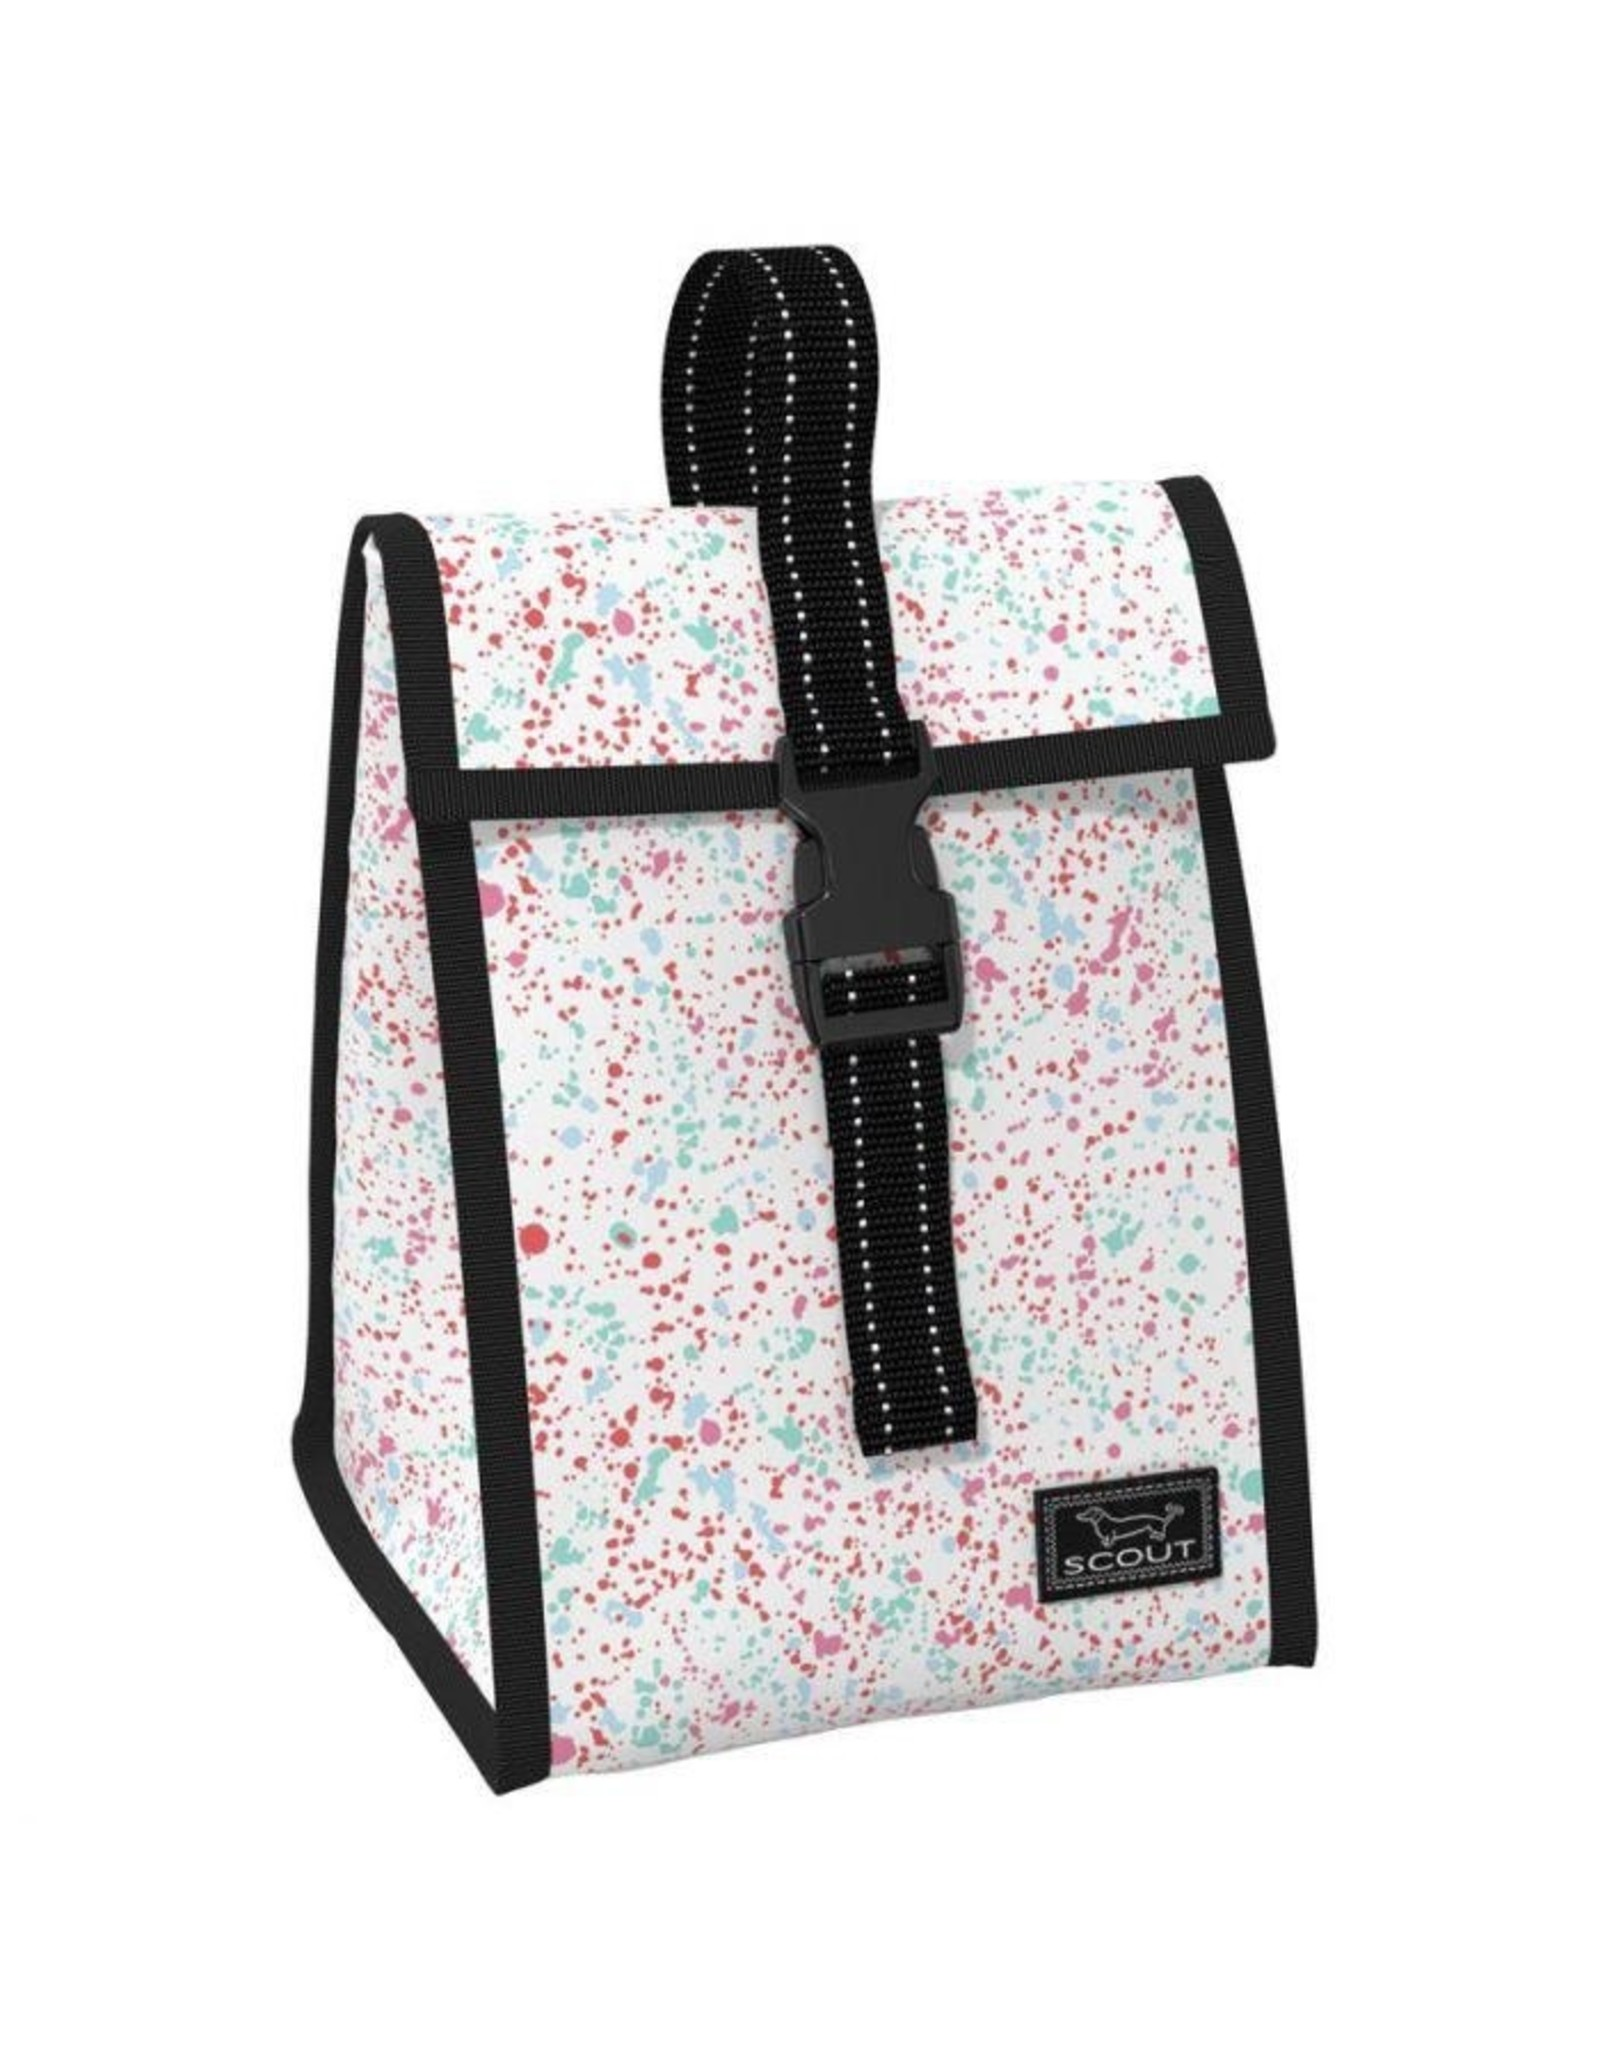 Scout Bags Doggie Bag Lunch Box Insulated Cooler Splatti LaBelle